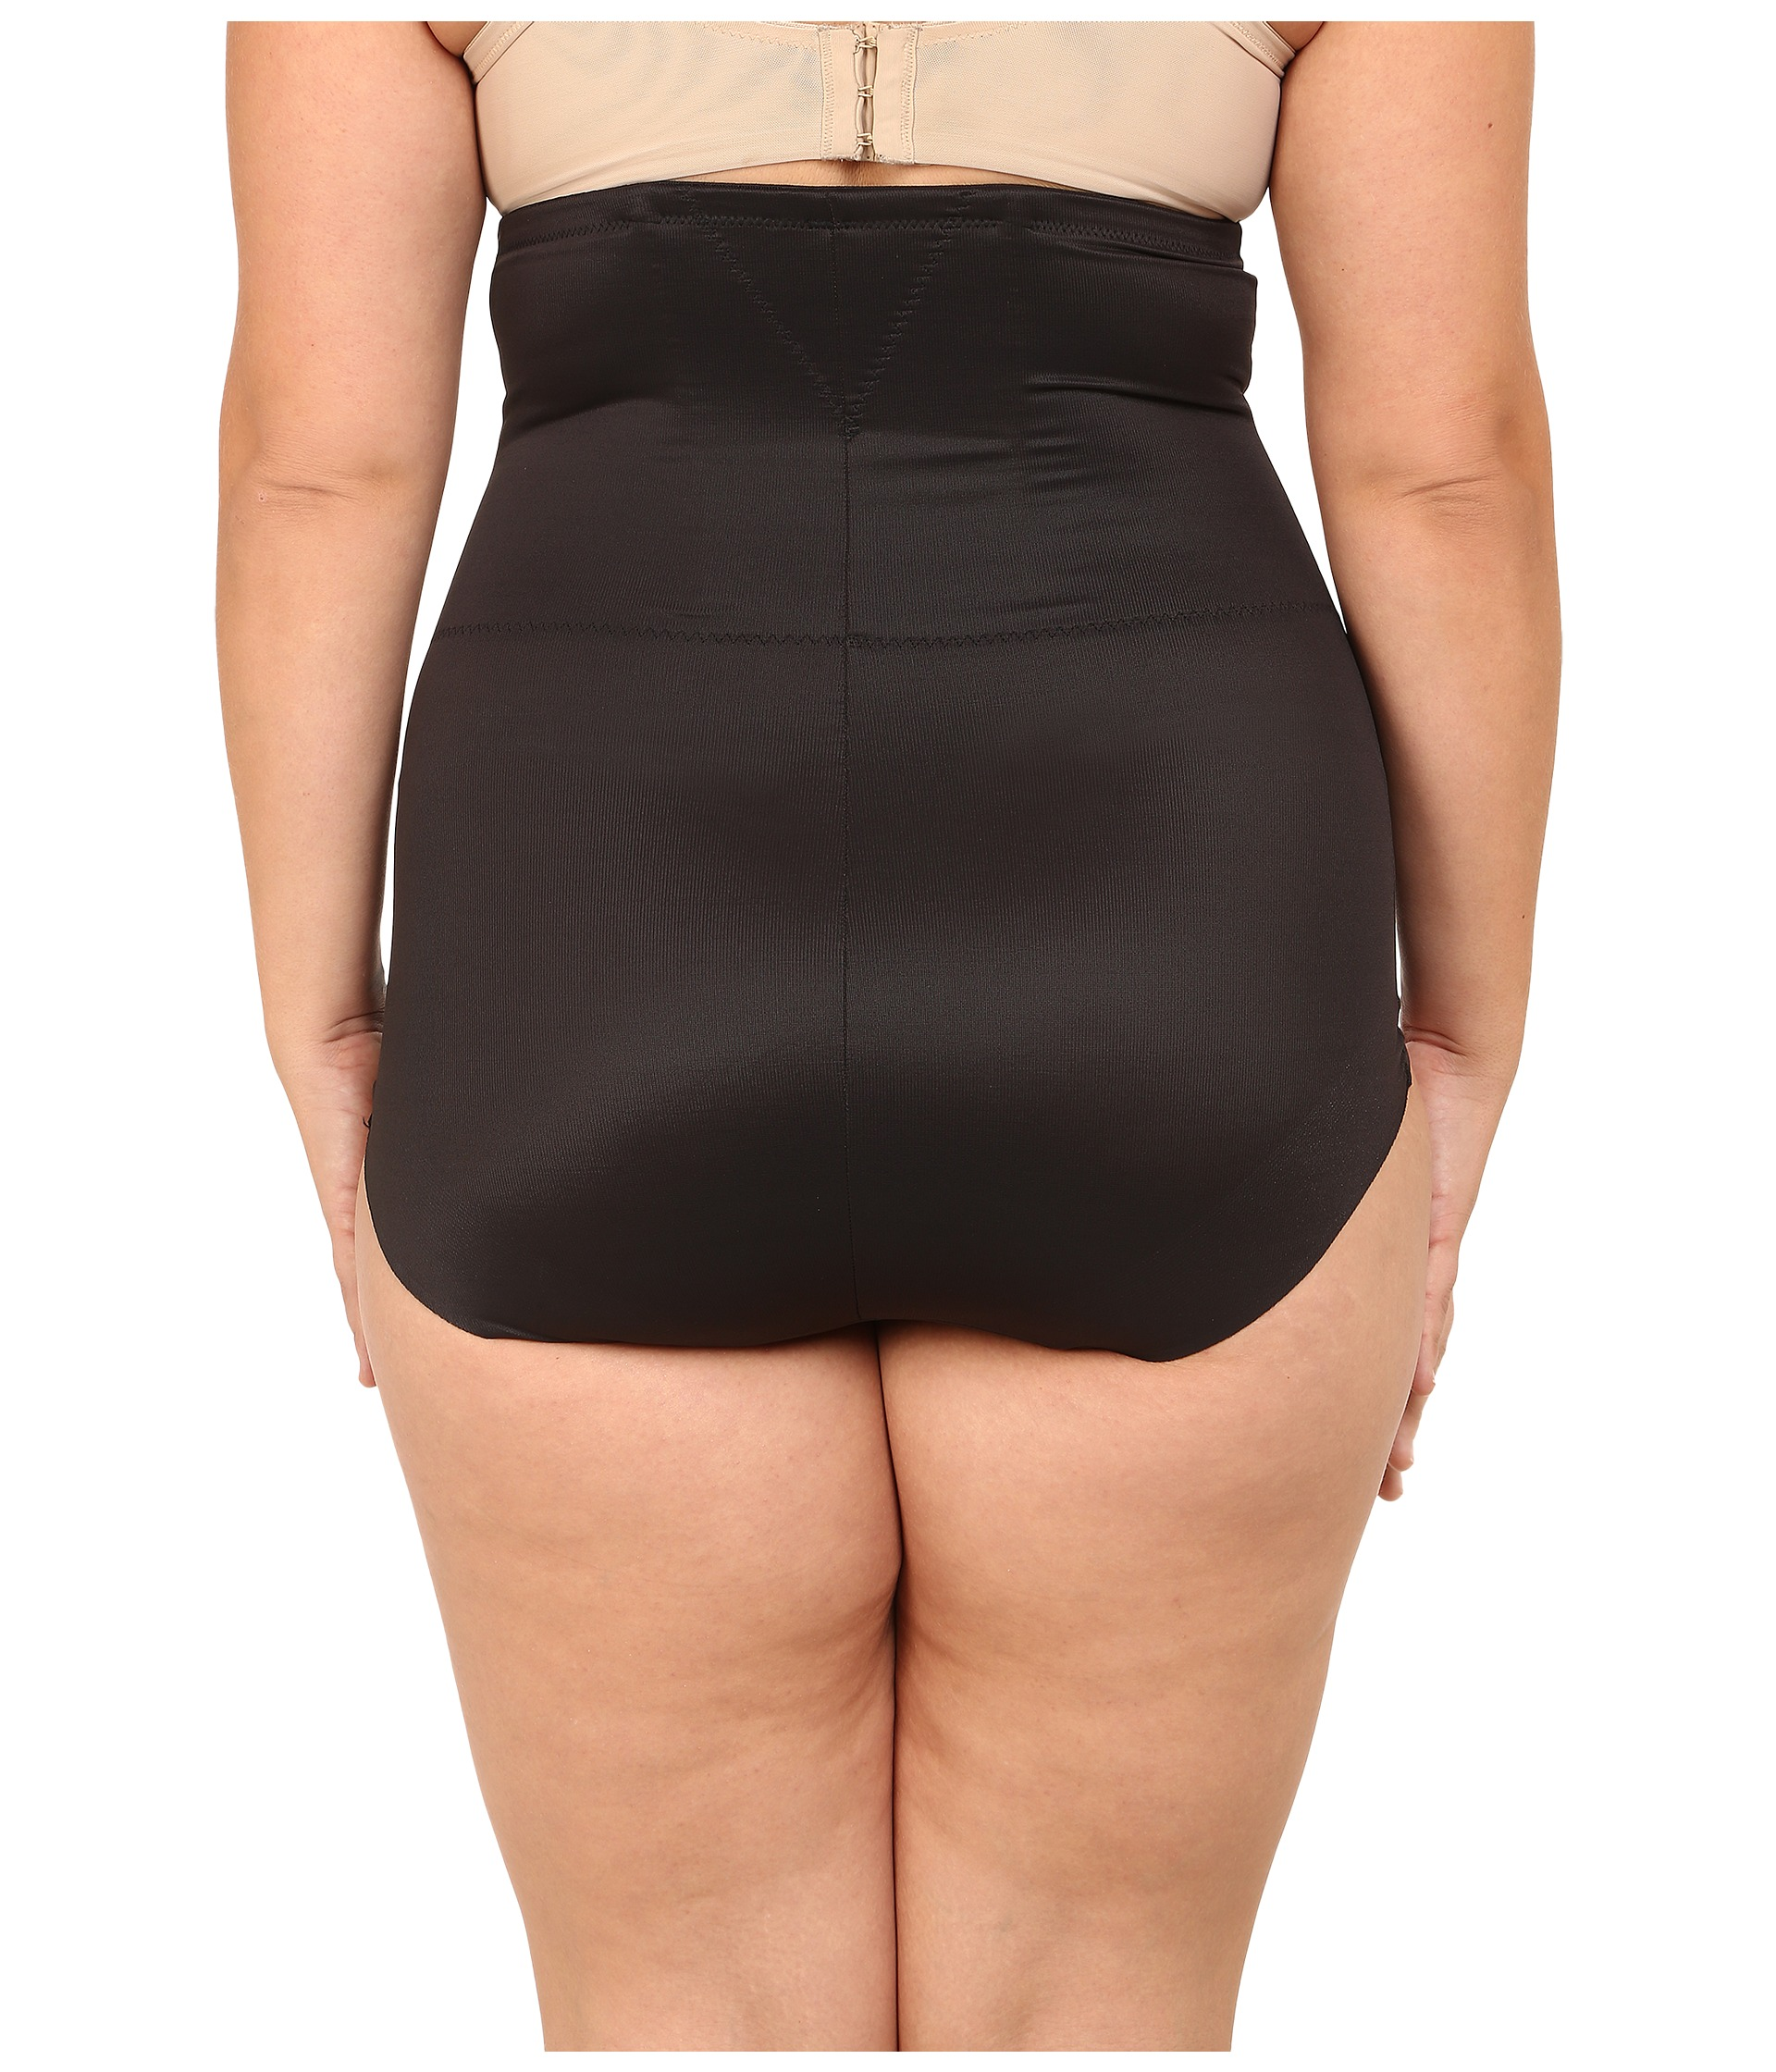 Full Figure Body Girdle | bodywrap women s all inclusive ...